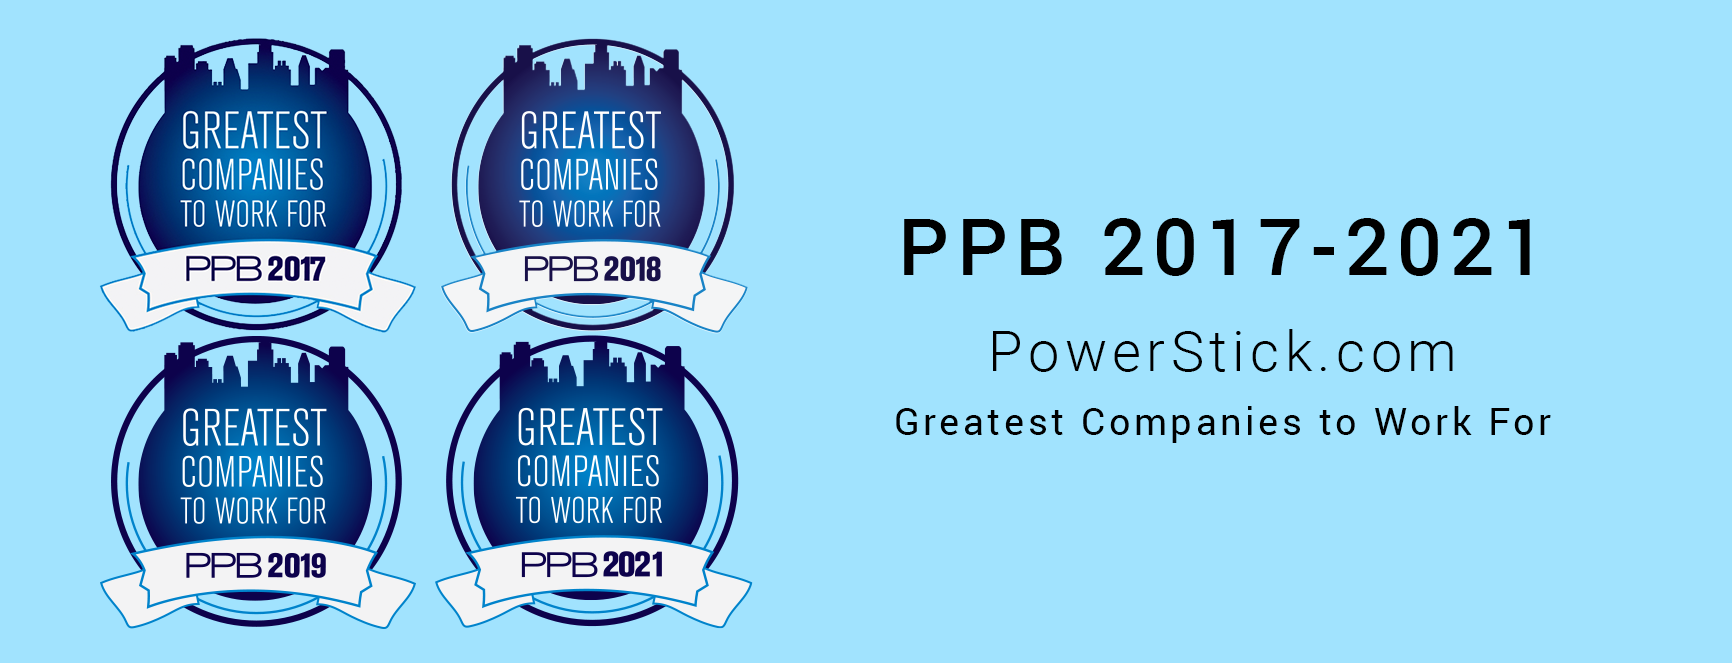 Greatest Companies to Work For